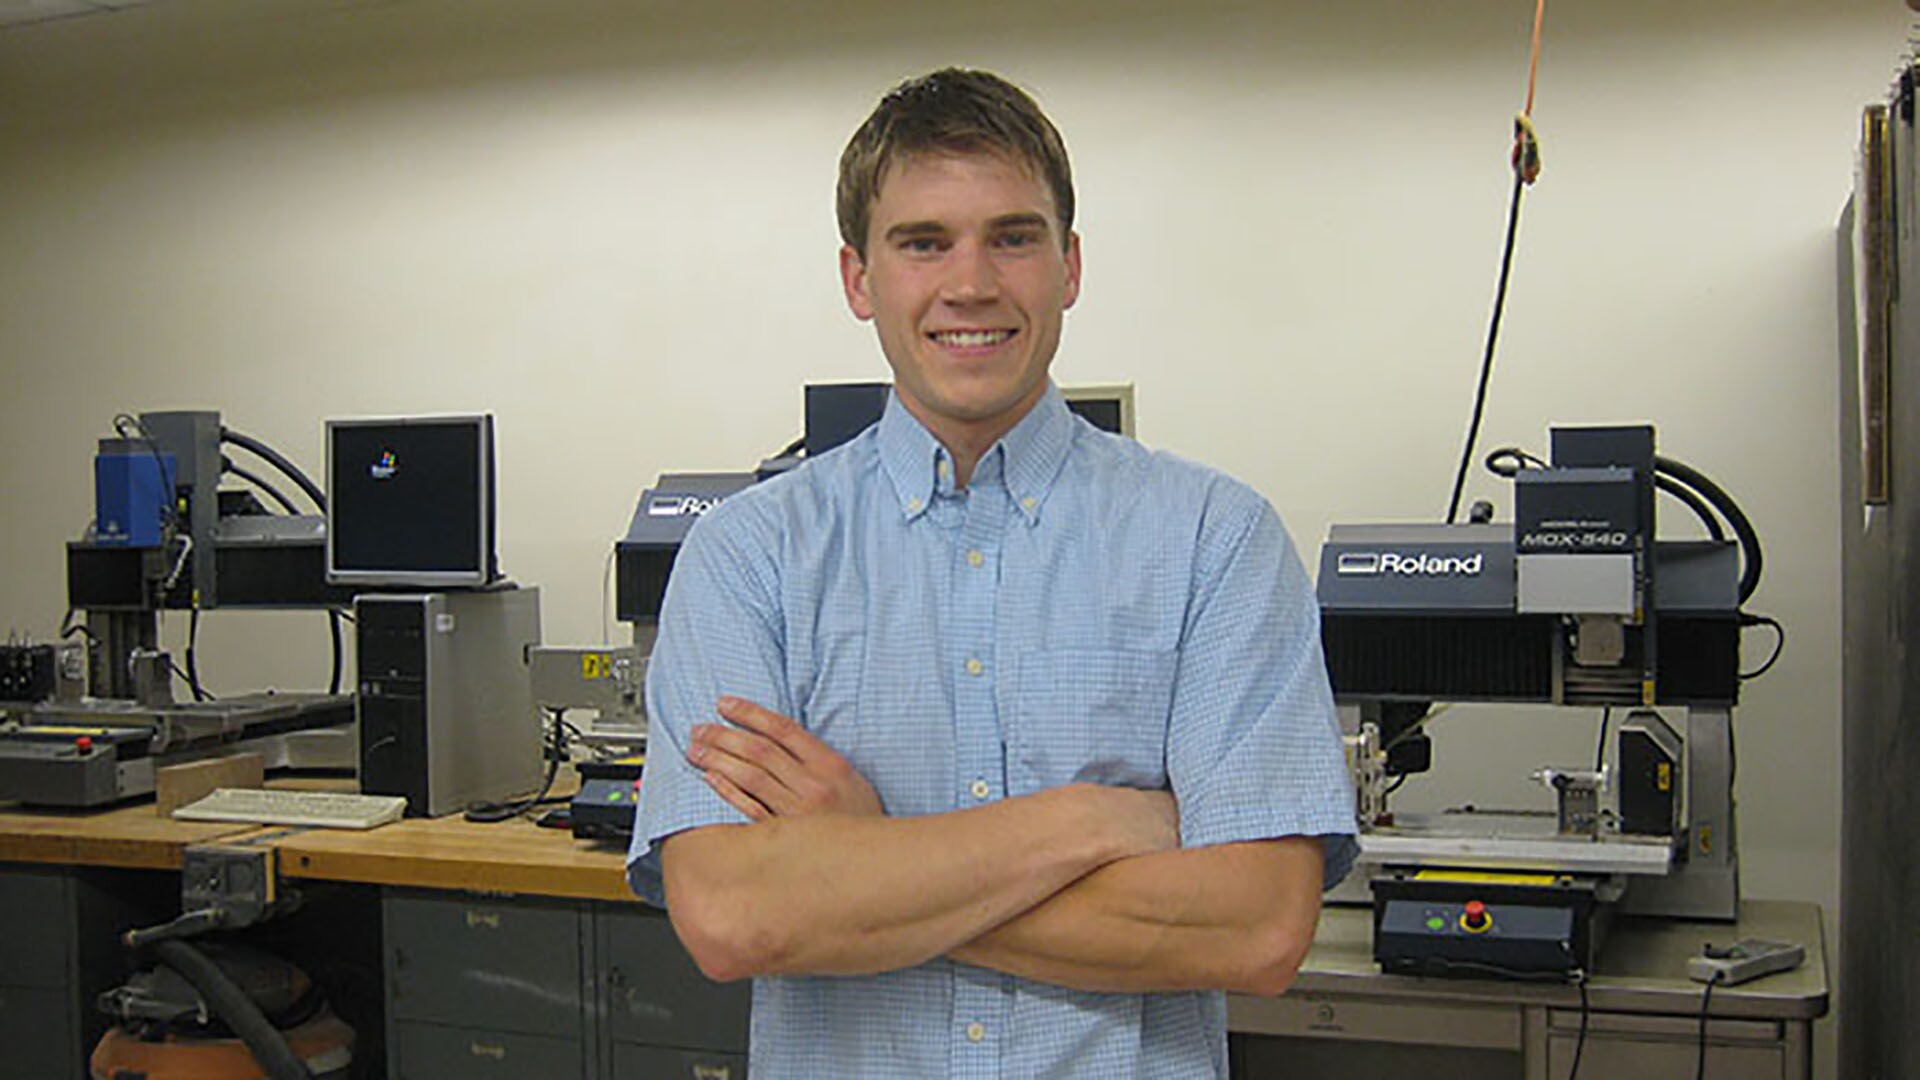 Student standing in front of small table top milling machines